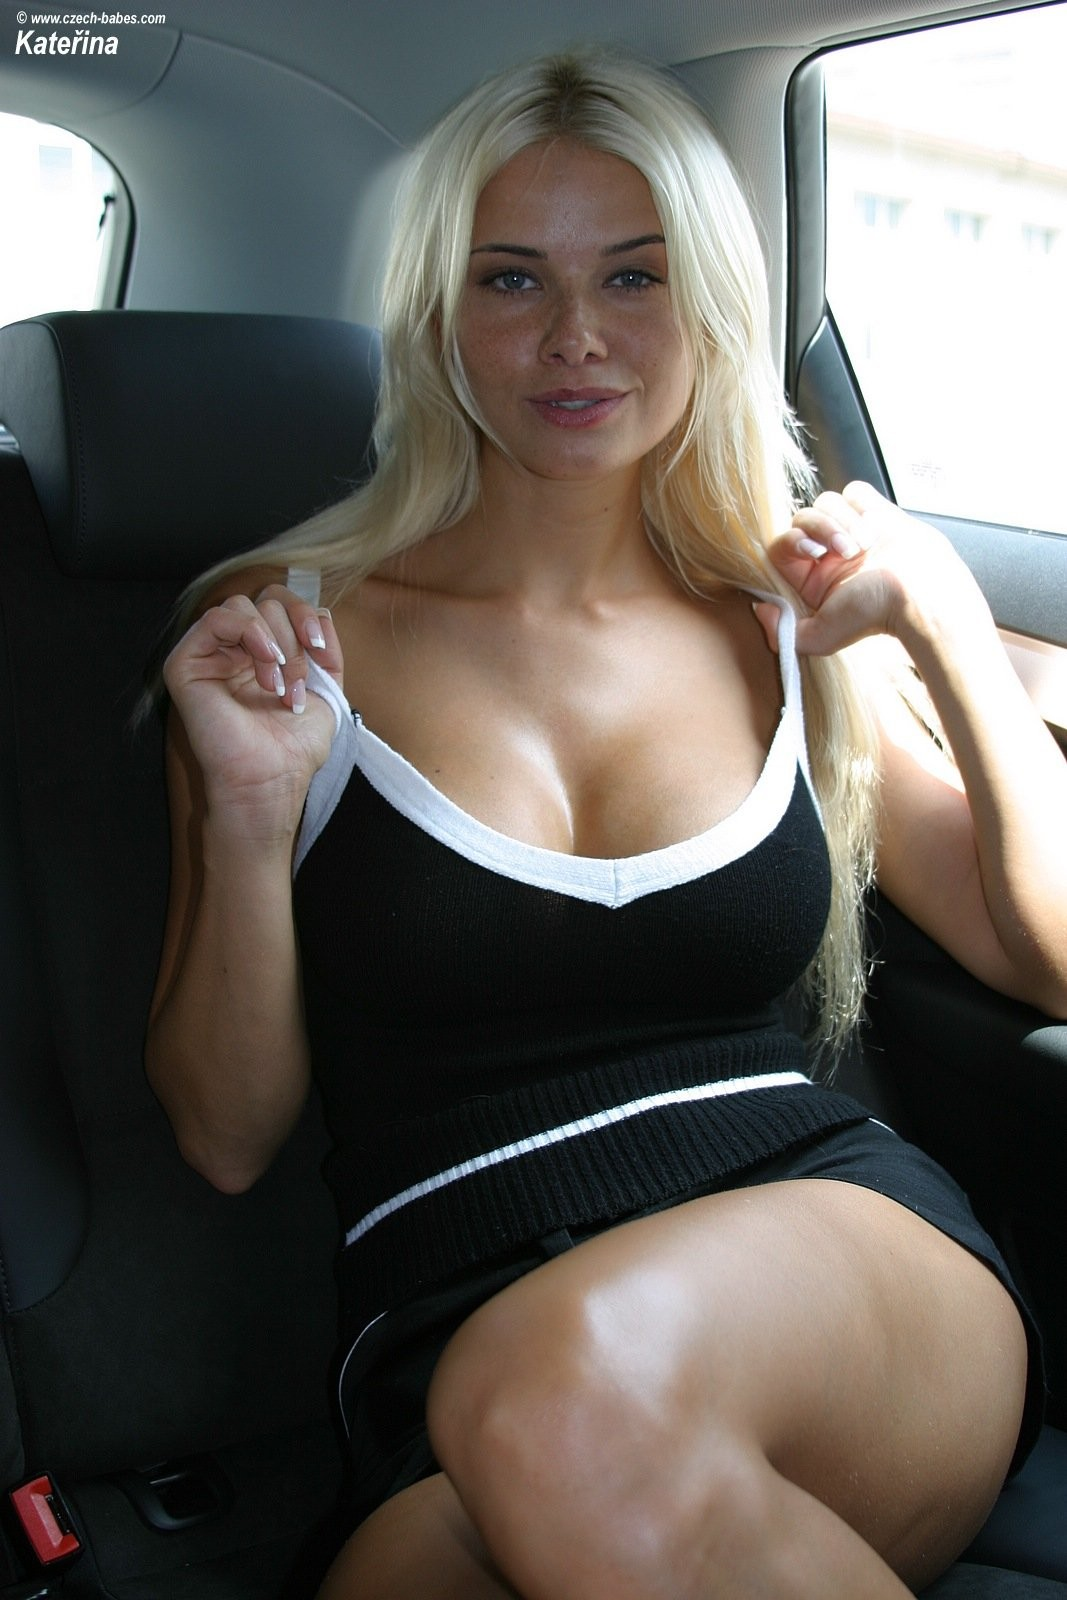 katerina-boobs-car-nude-czech-babes-02